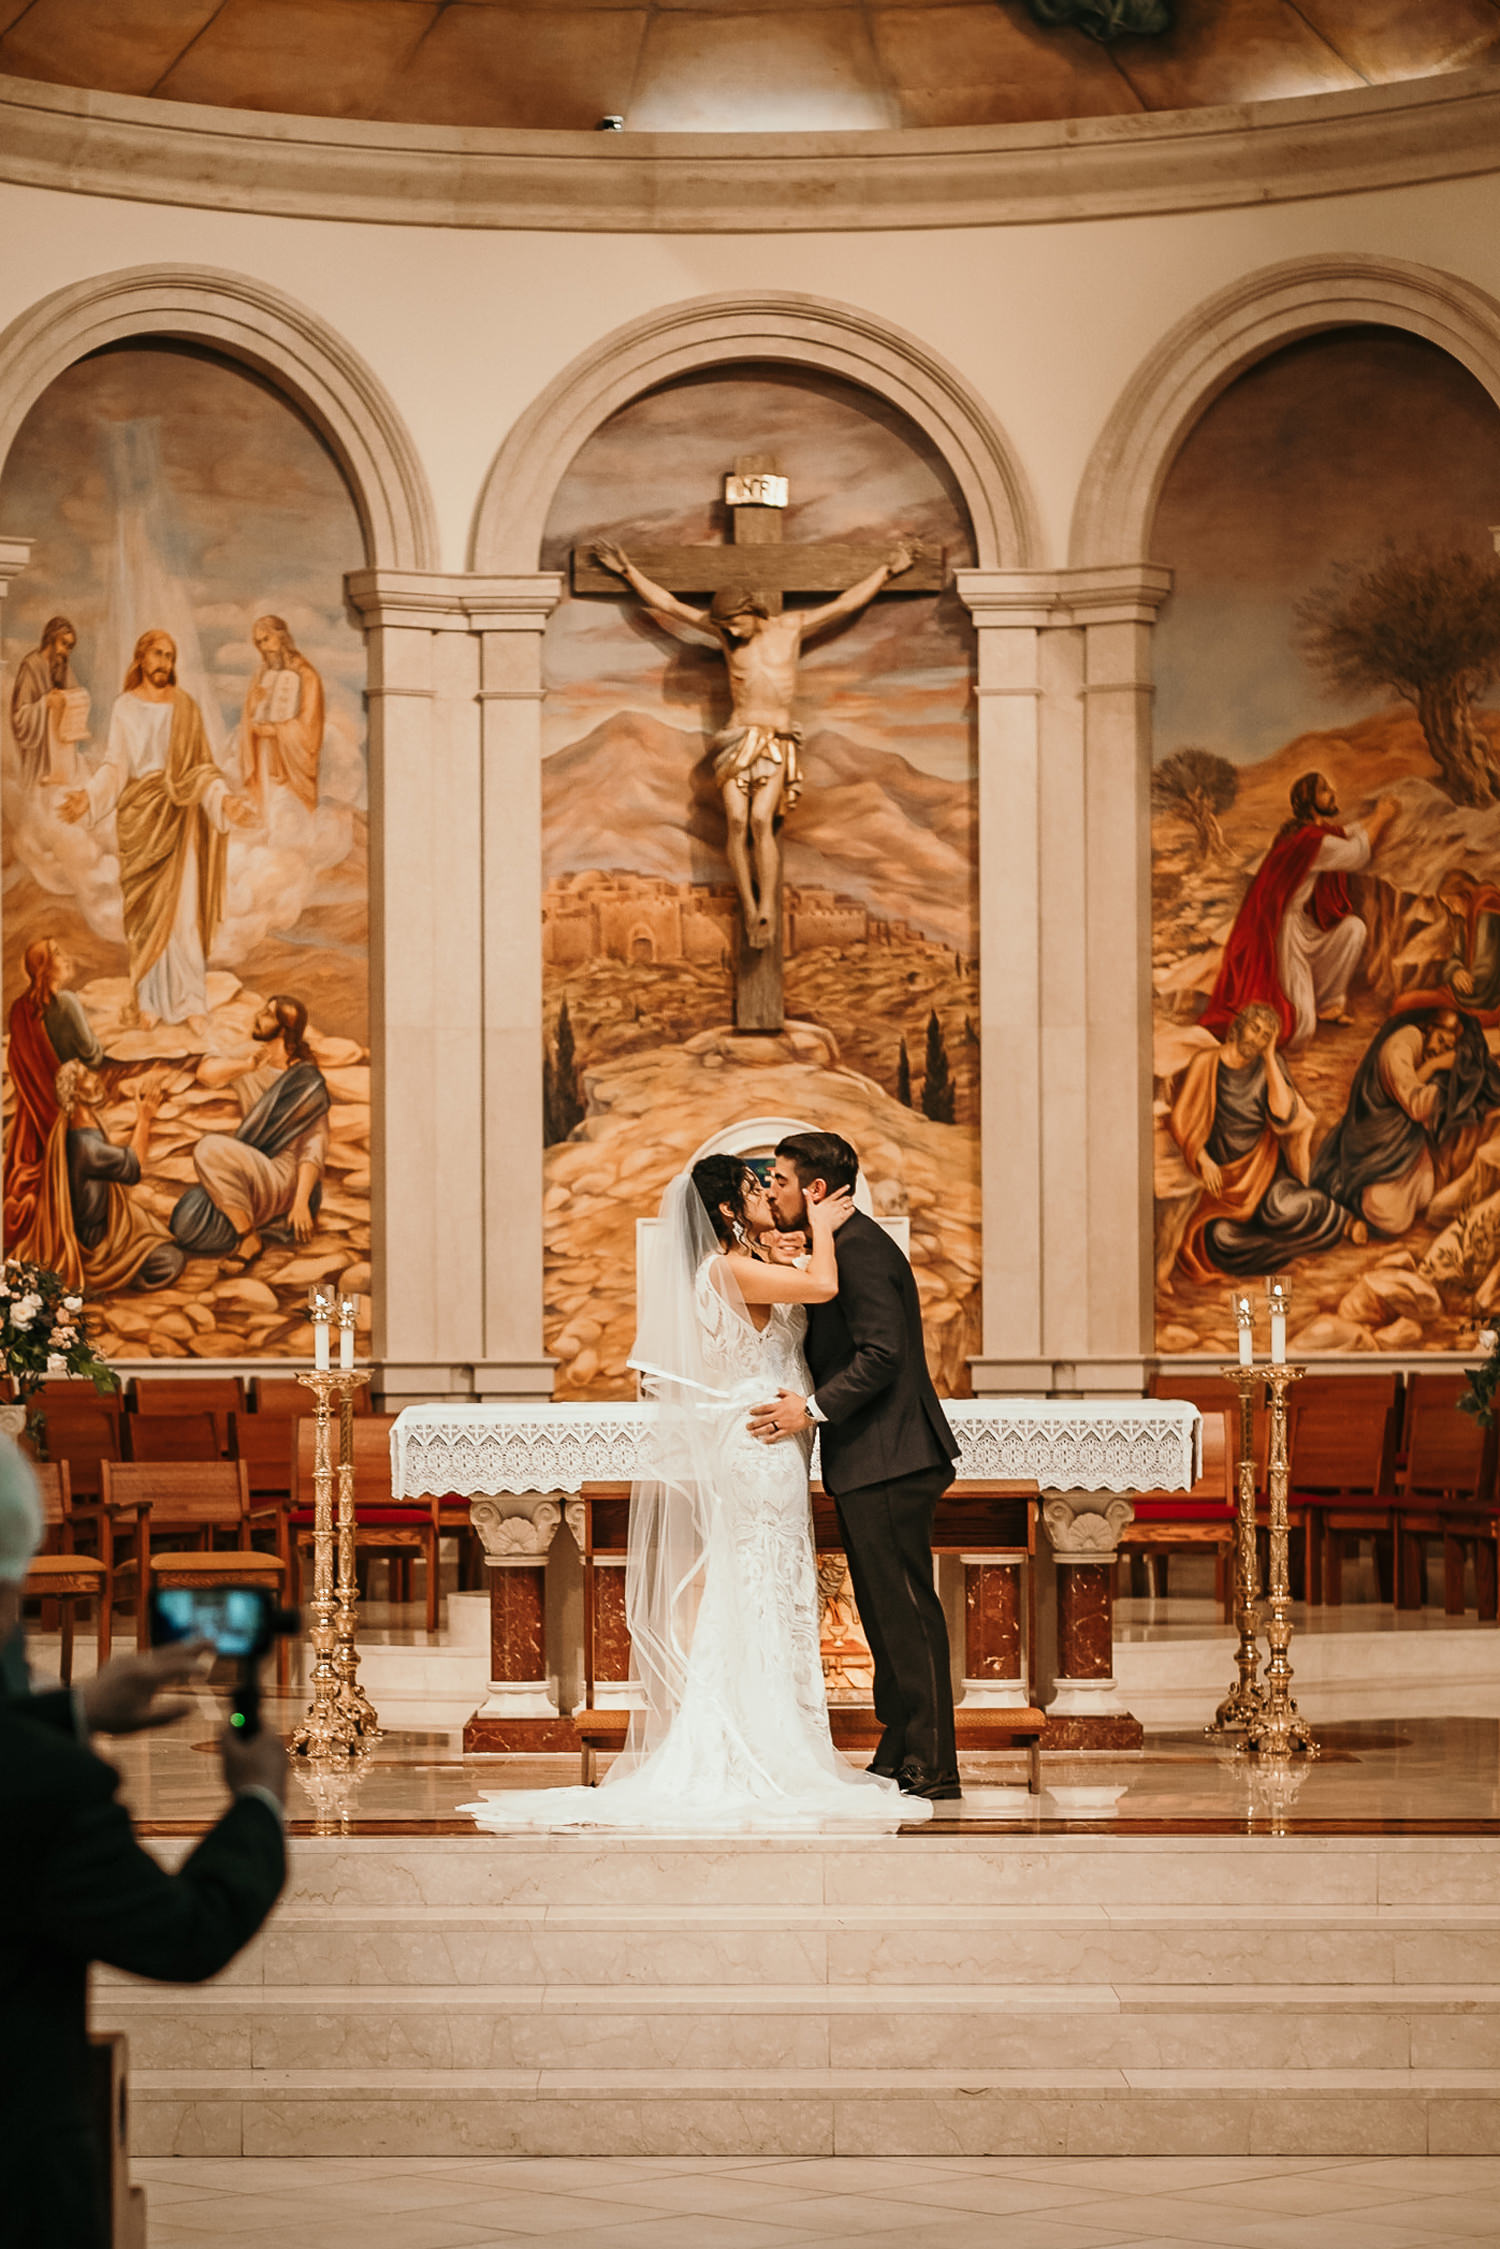 newlyweds first kiss at church altar